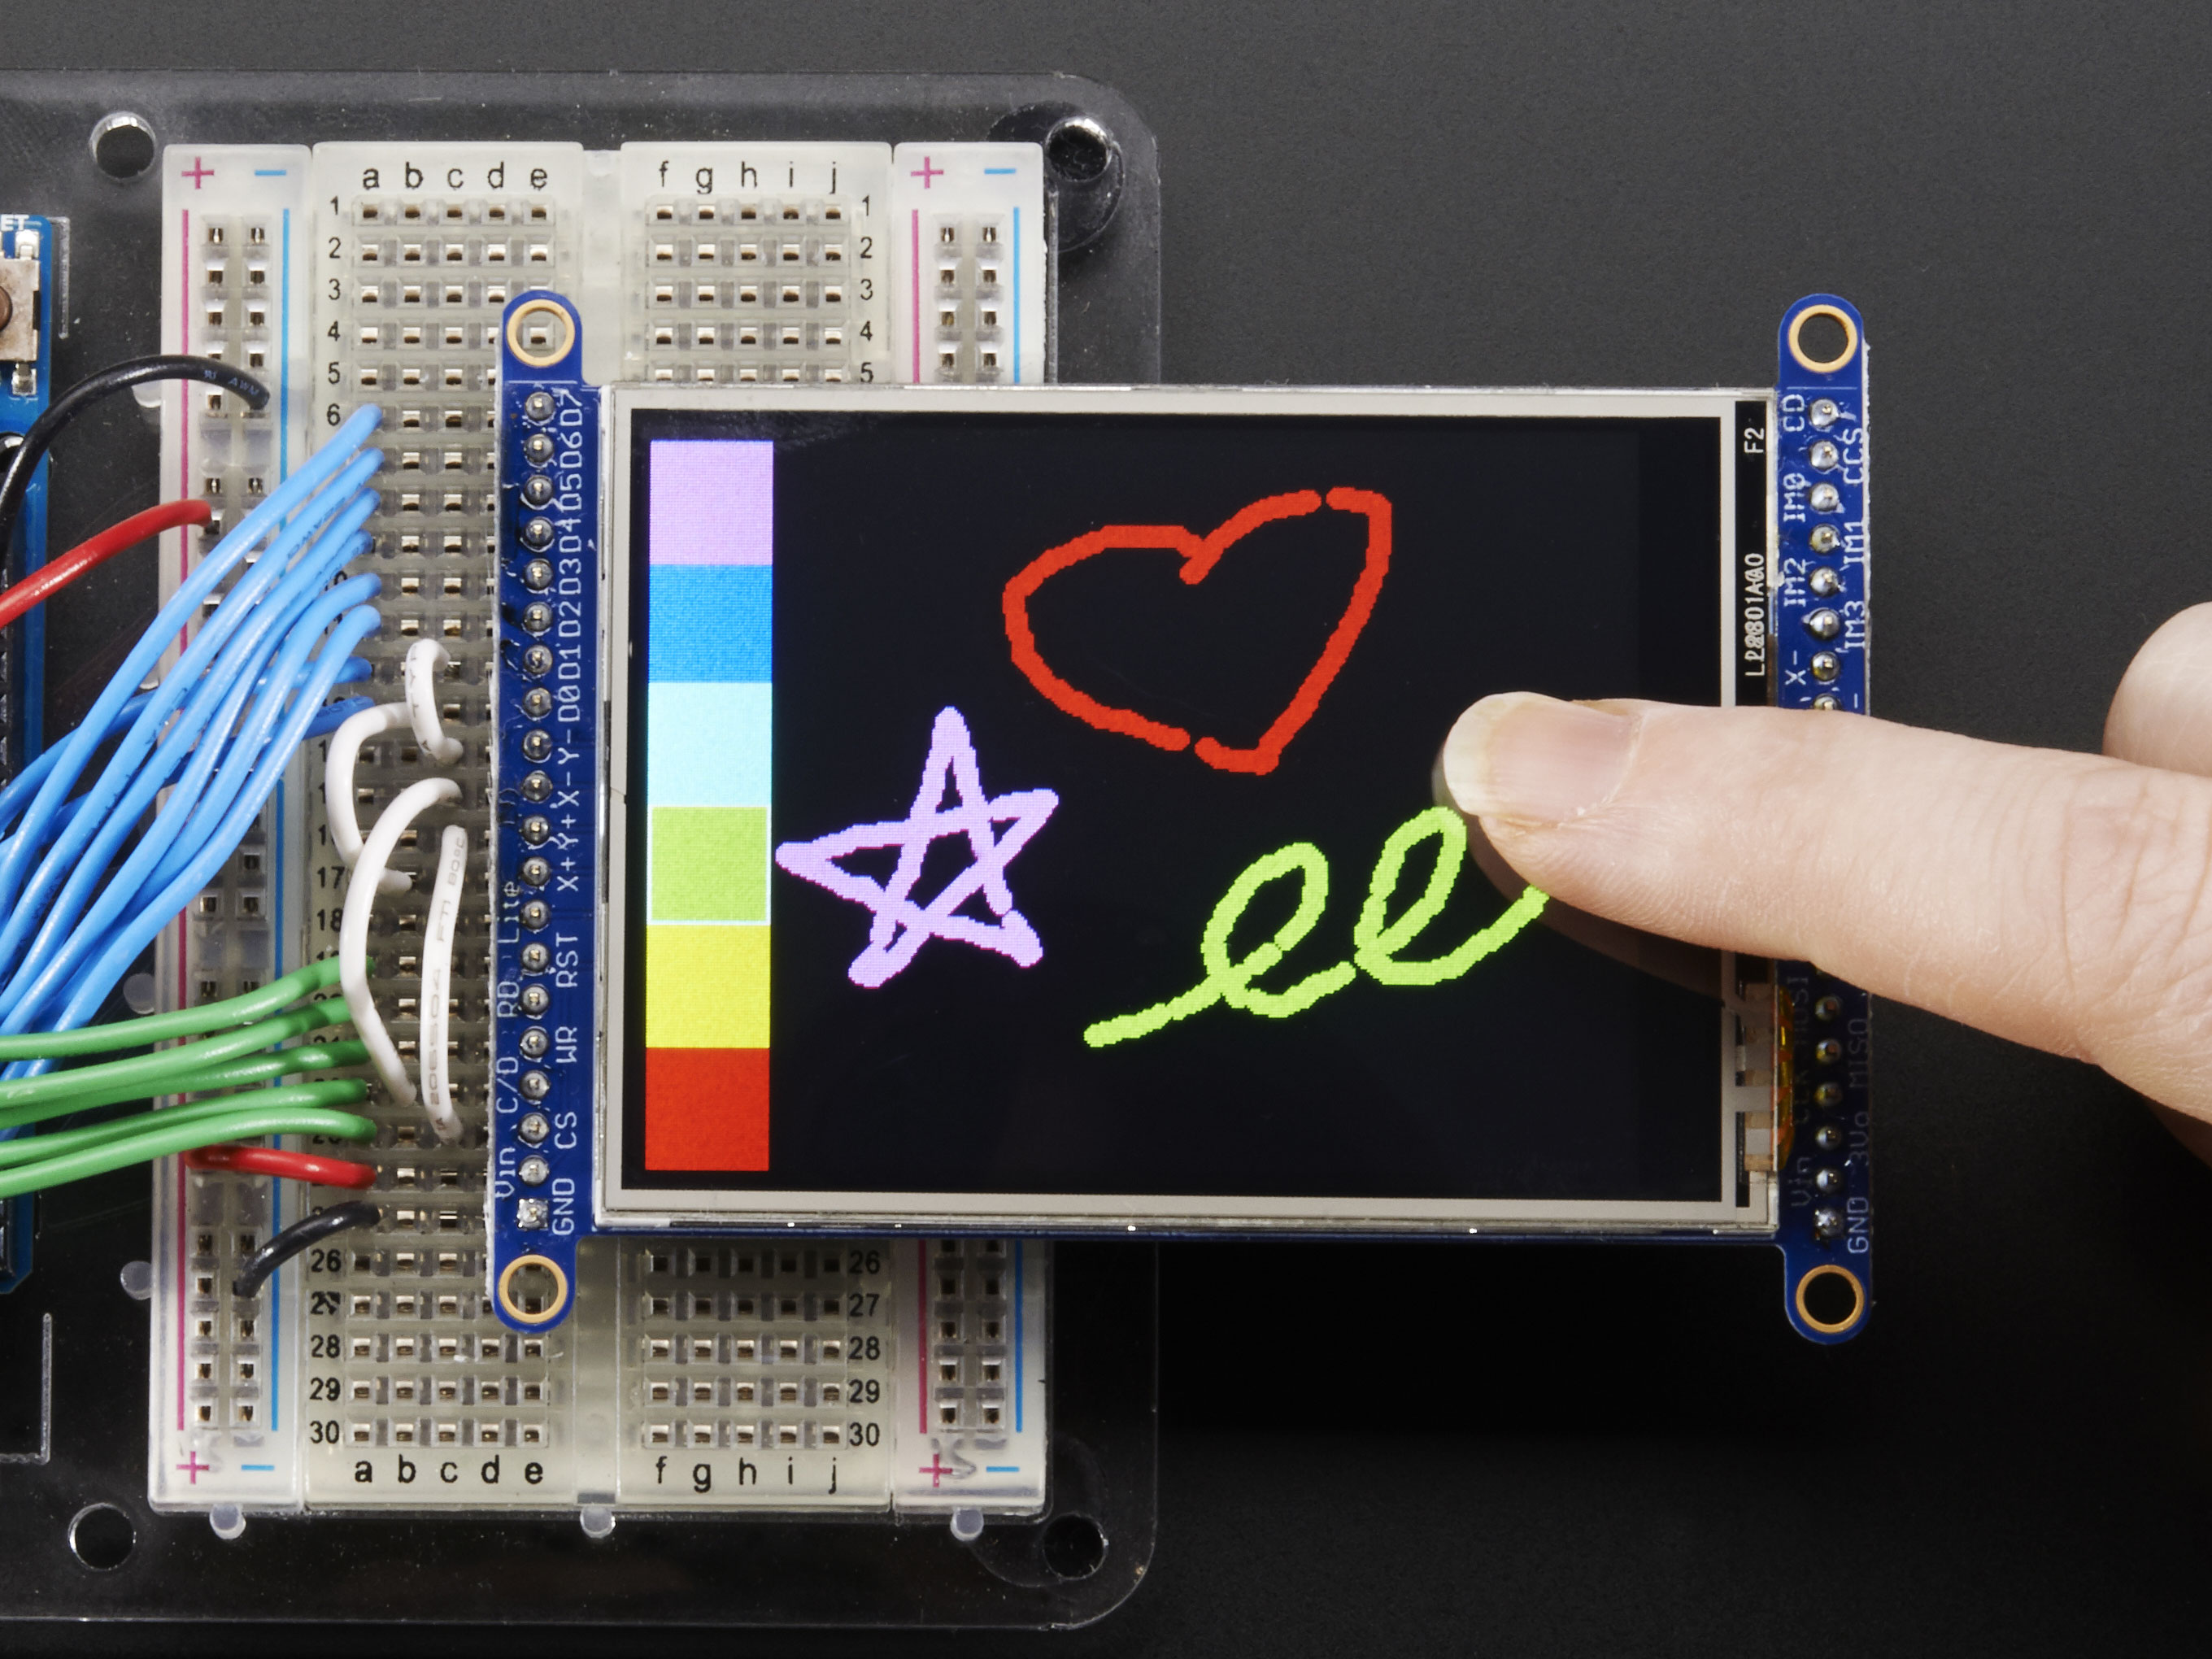 adafruit_products_P1770_ORIG.jpg